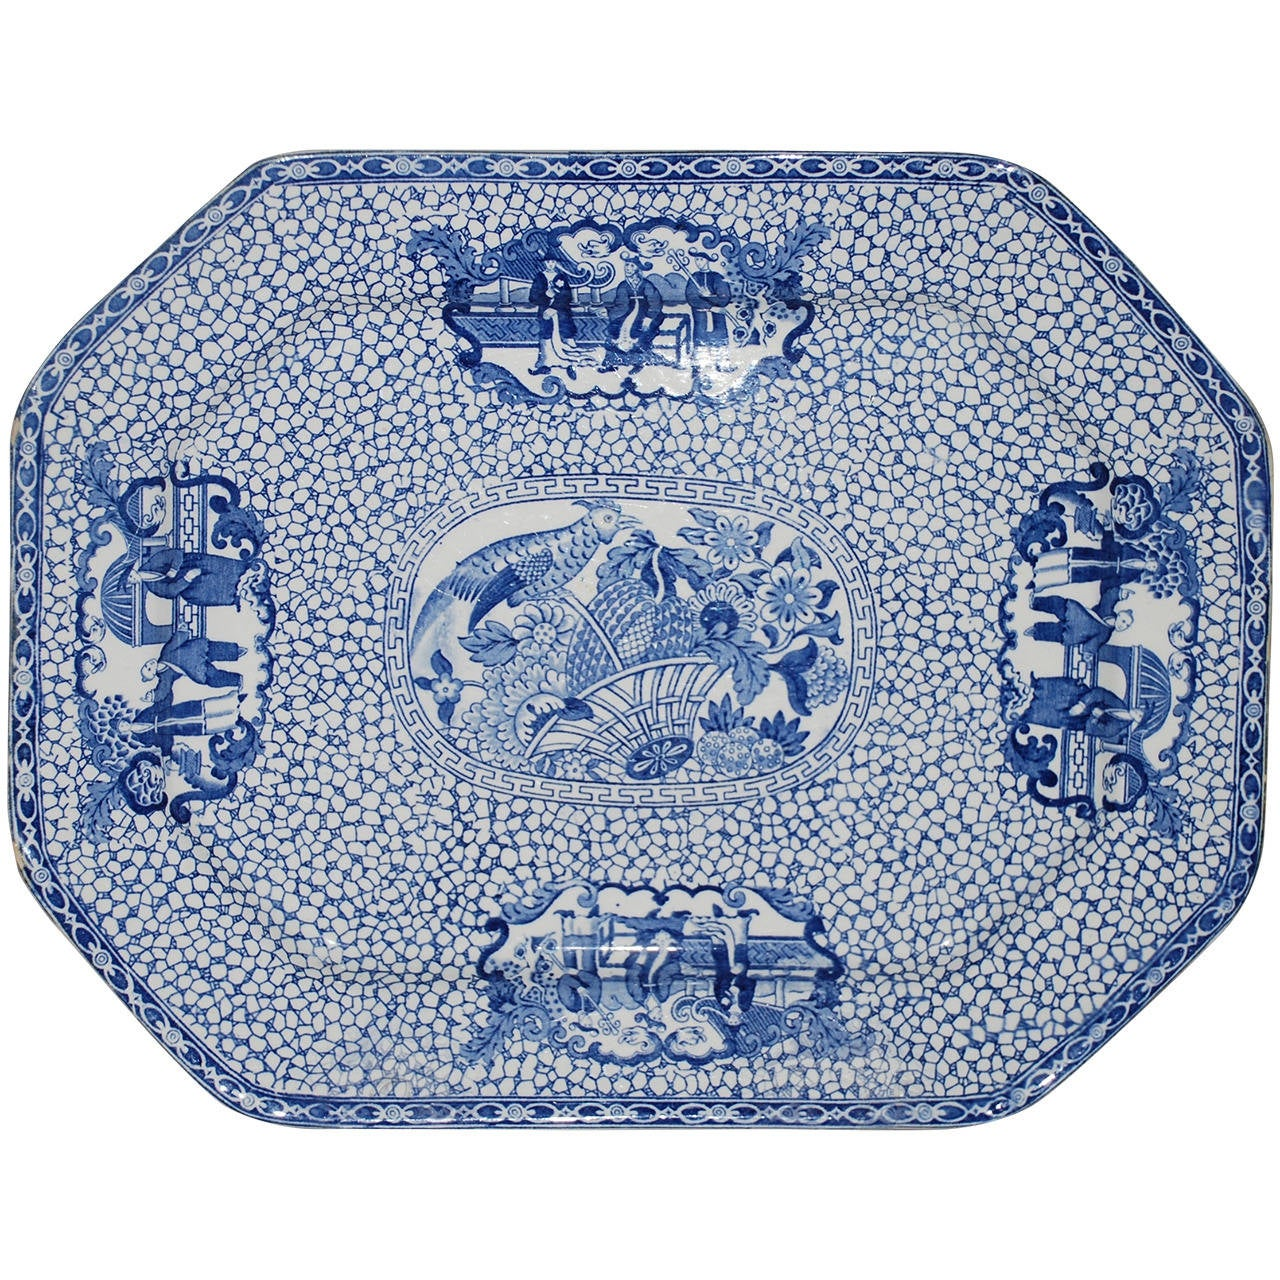 Blue And White Chinese Bird Platter For Sale At 1stdibs